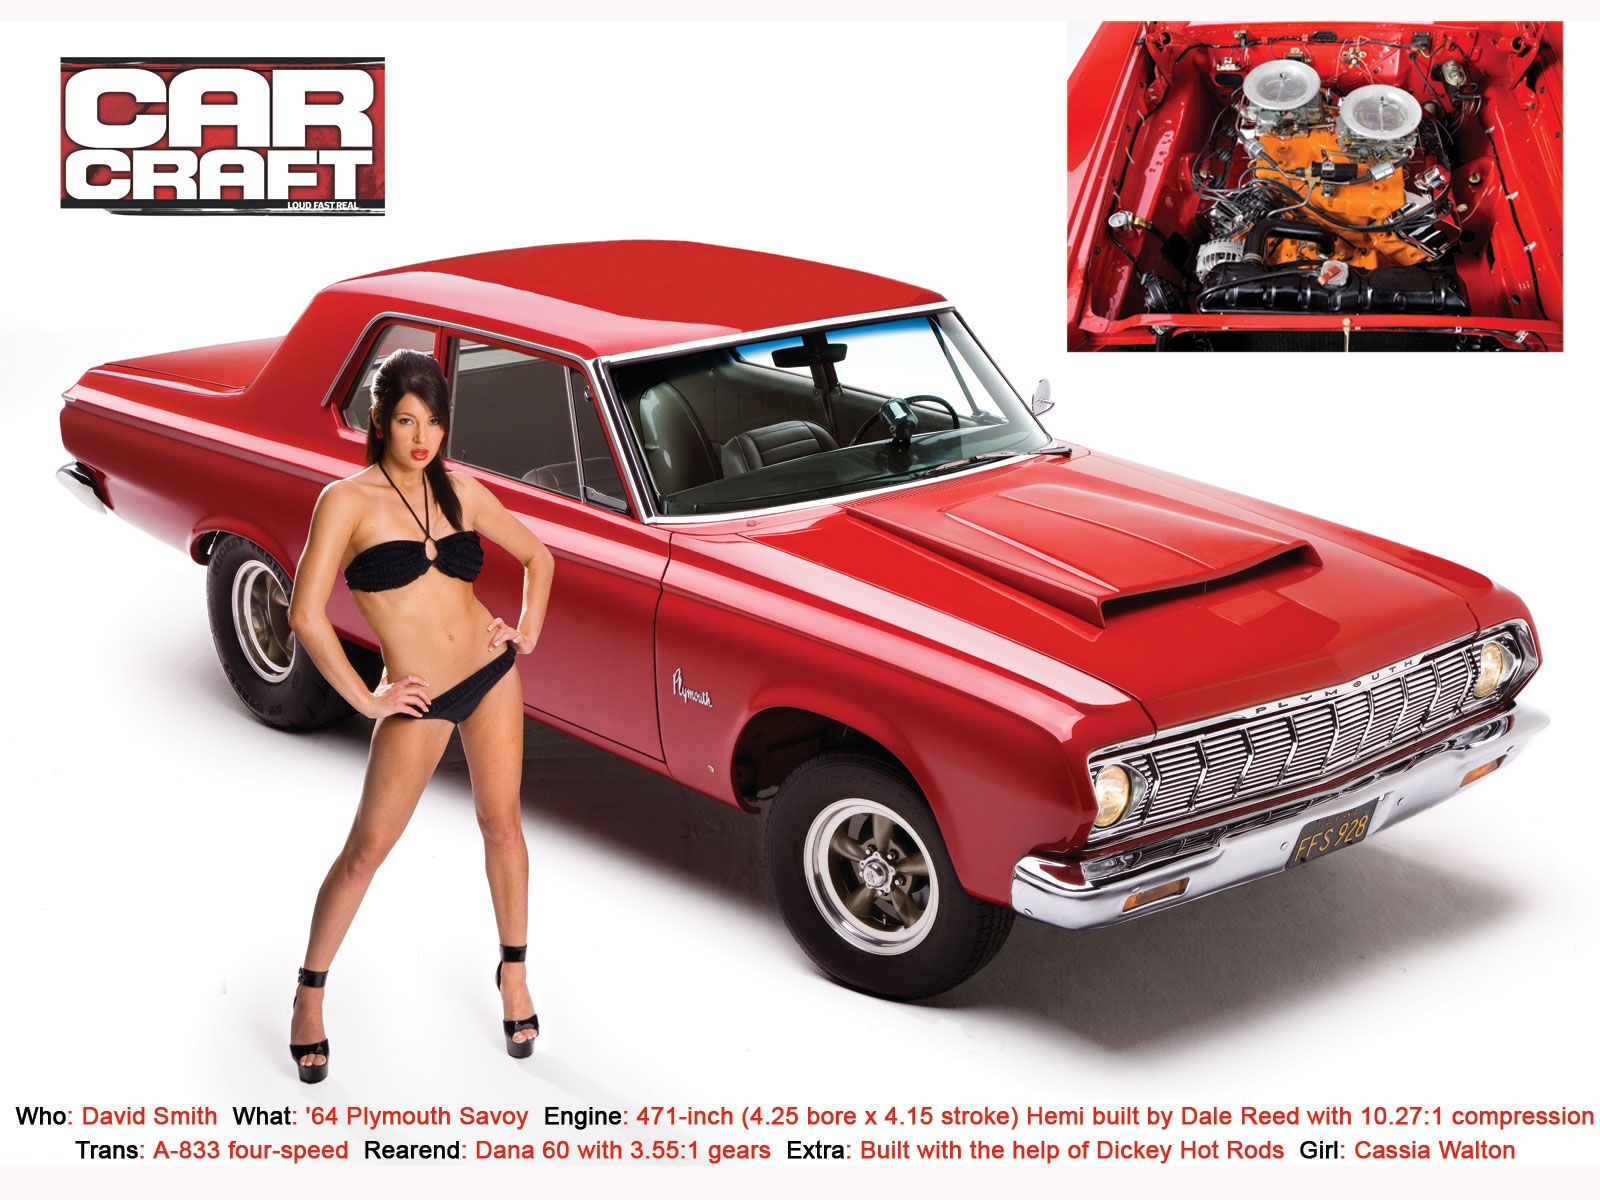 Car craft bikini contest